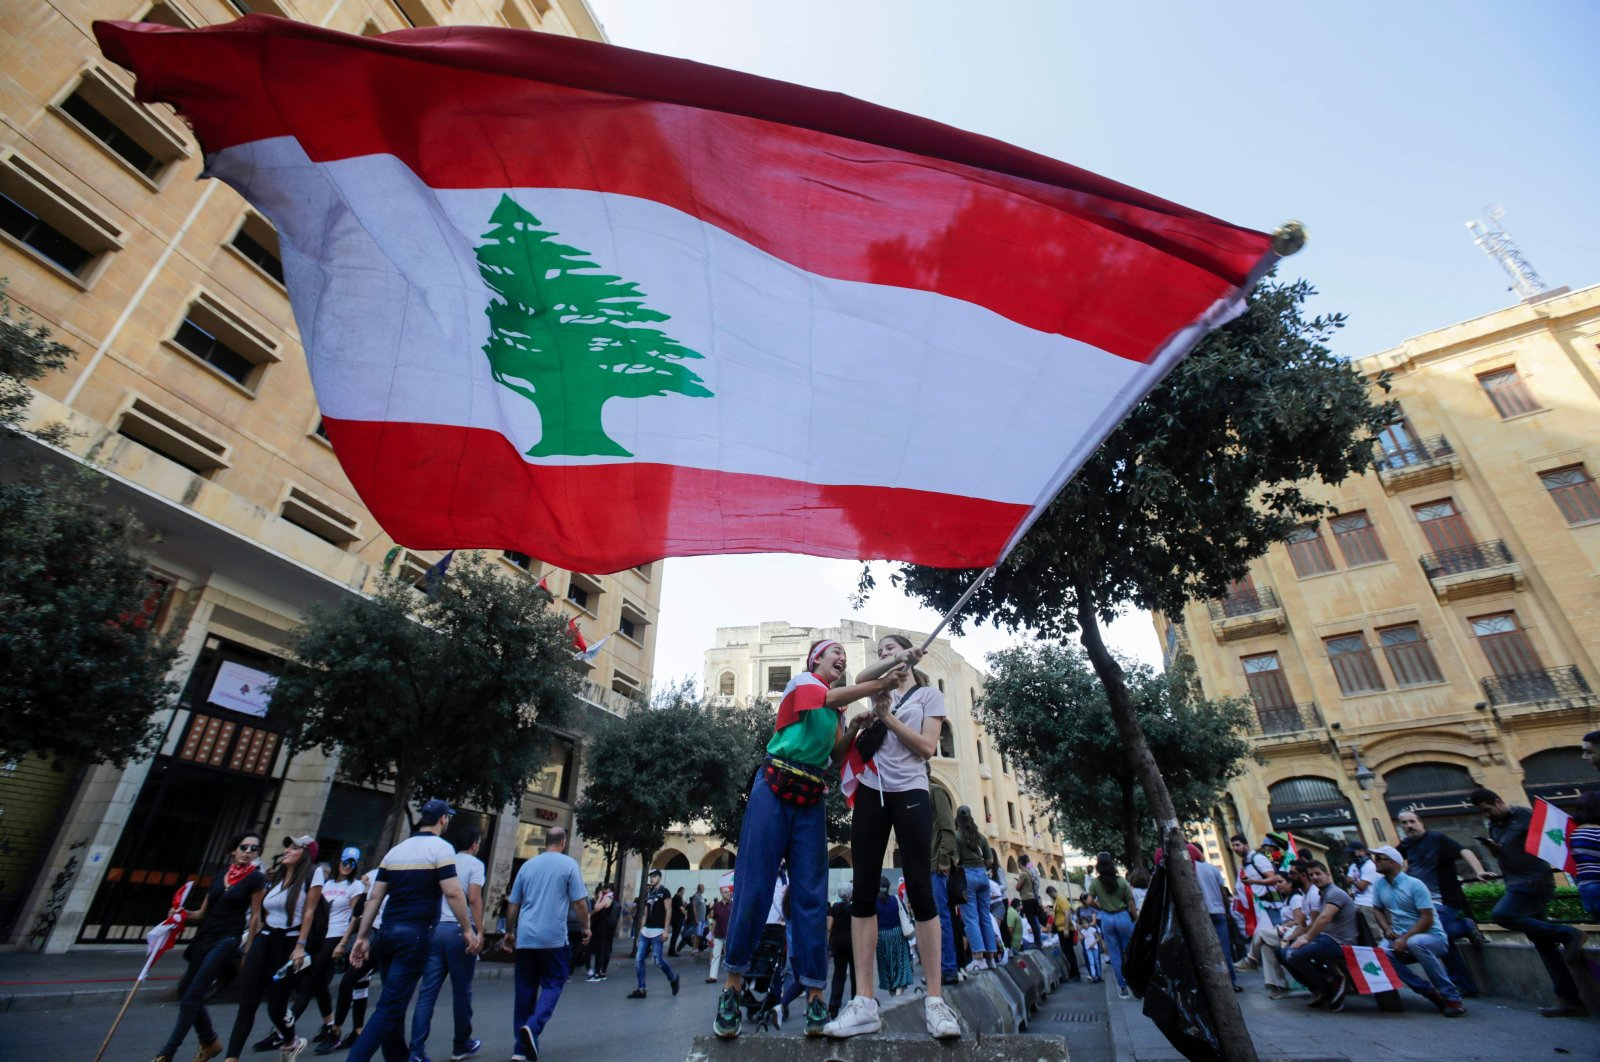 Lebanese protesters rally in downtown Beirut on the third day of demonstrations against tax increases and corruption, Lebanon, Oct. 20, 2019. (AFP Photo)